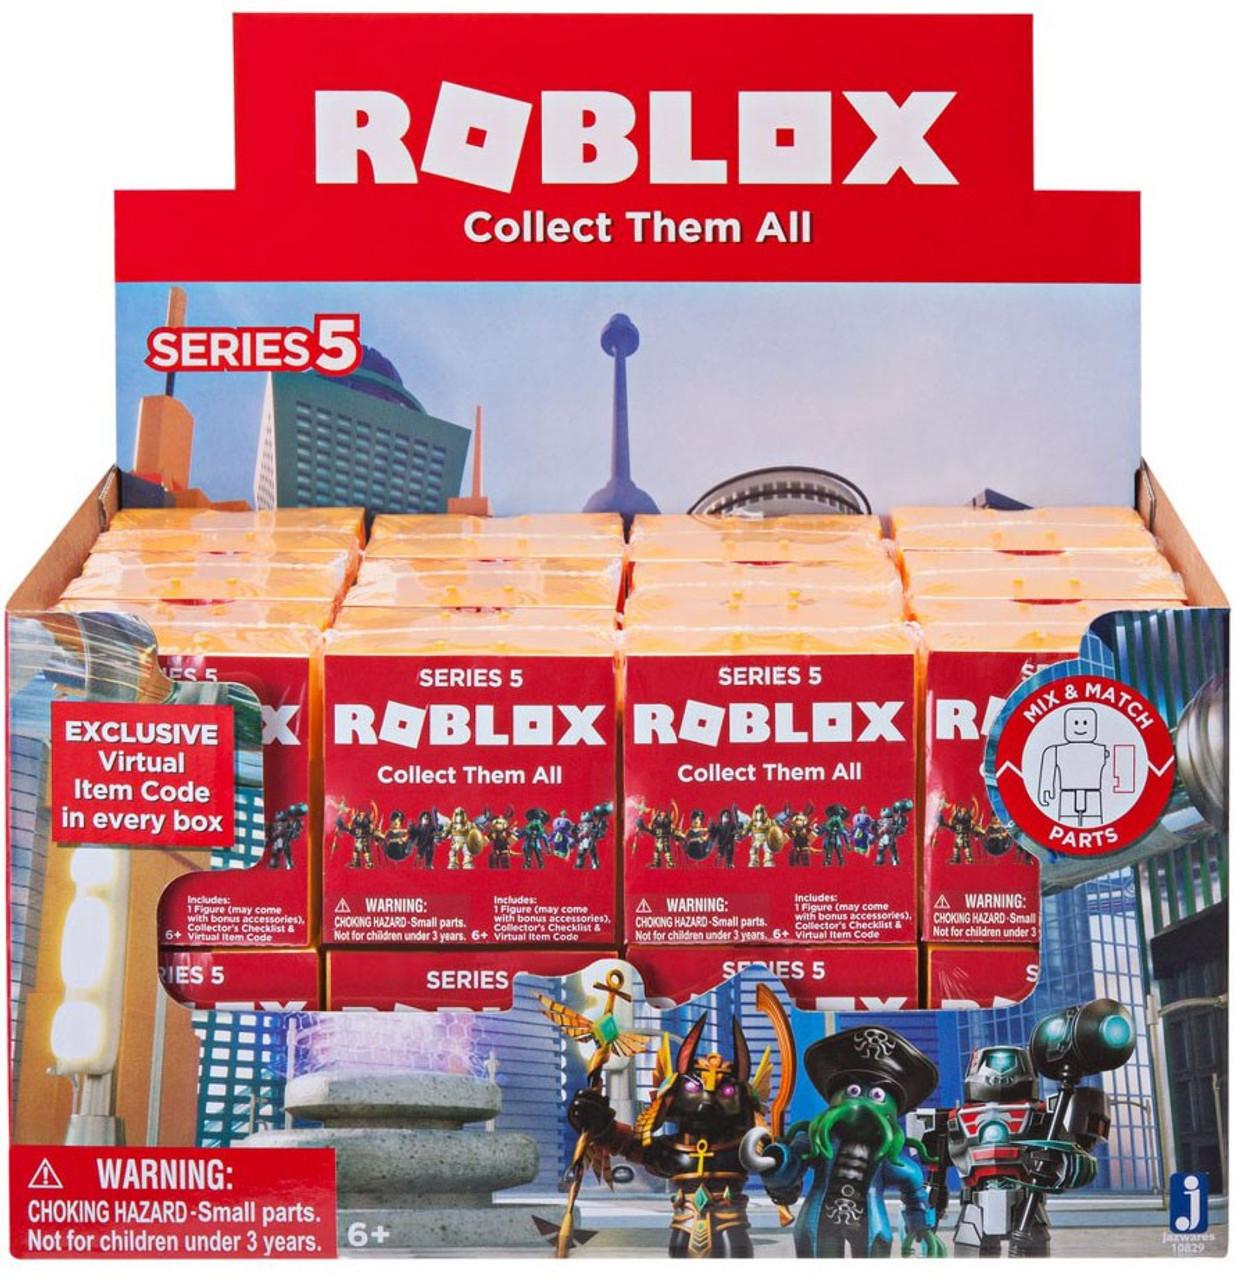 Roblox Mystery Box Series 3 - Roblox Series 5 Mystery Box Gold Cube 24 Packs Jazwares